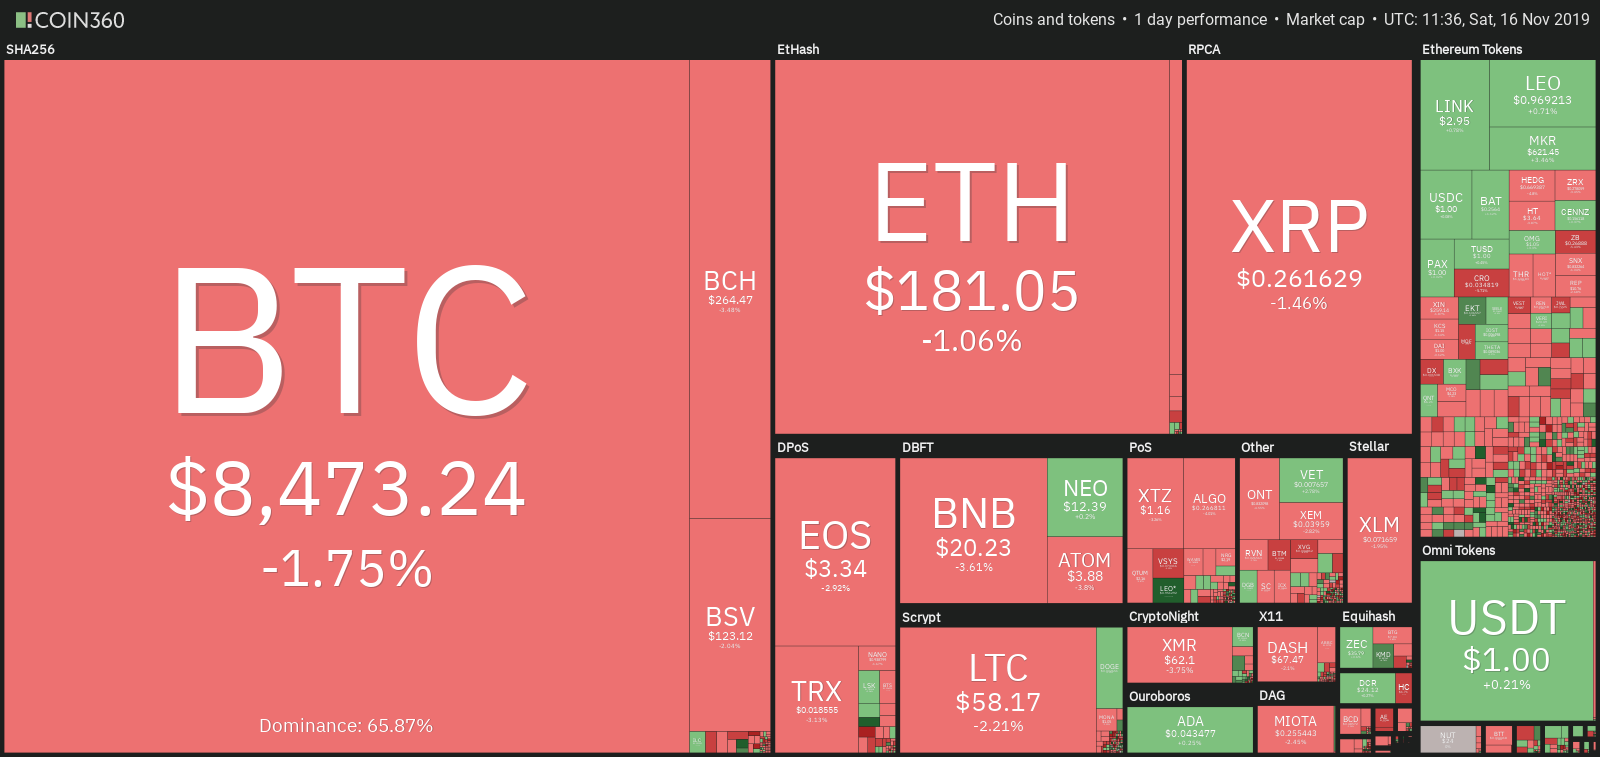 Crypto market data. Source: Coin360